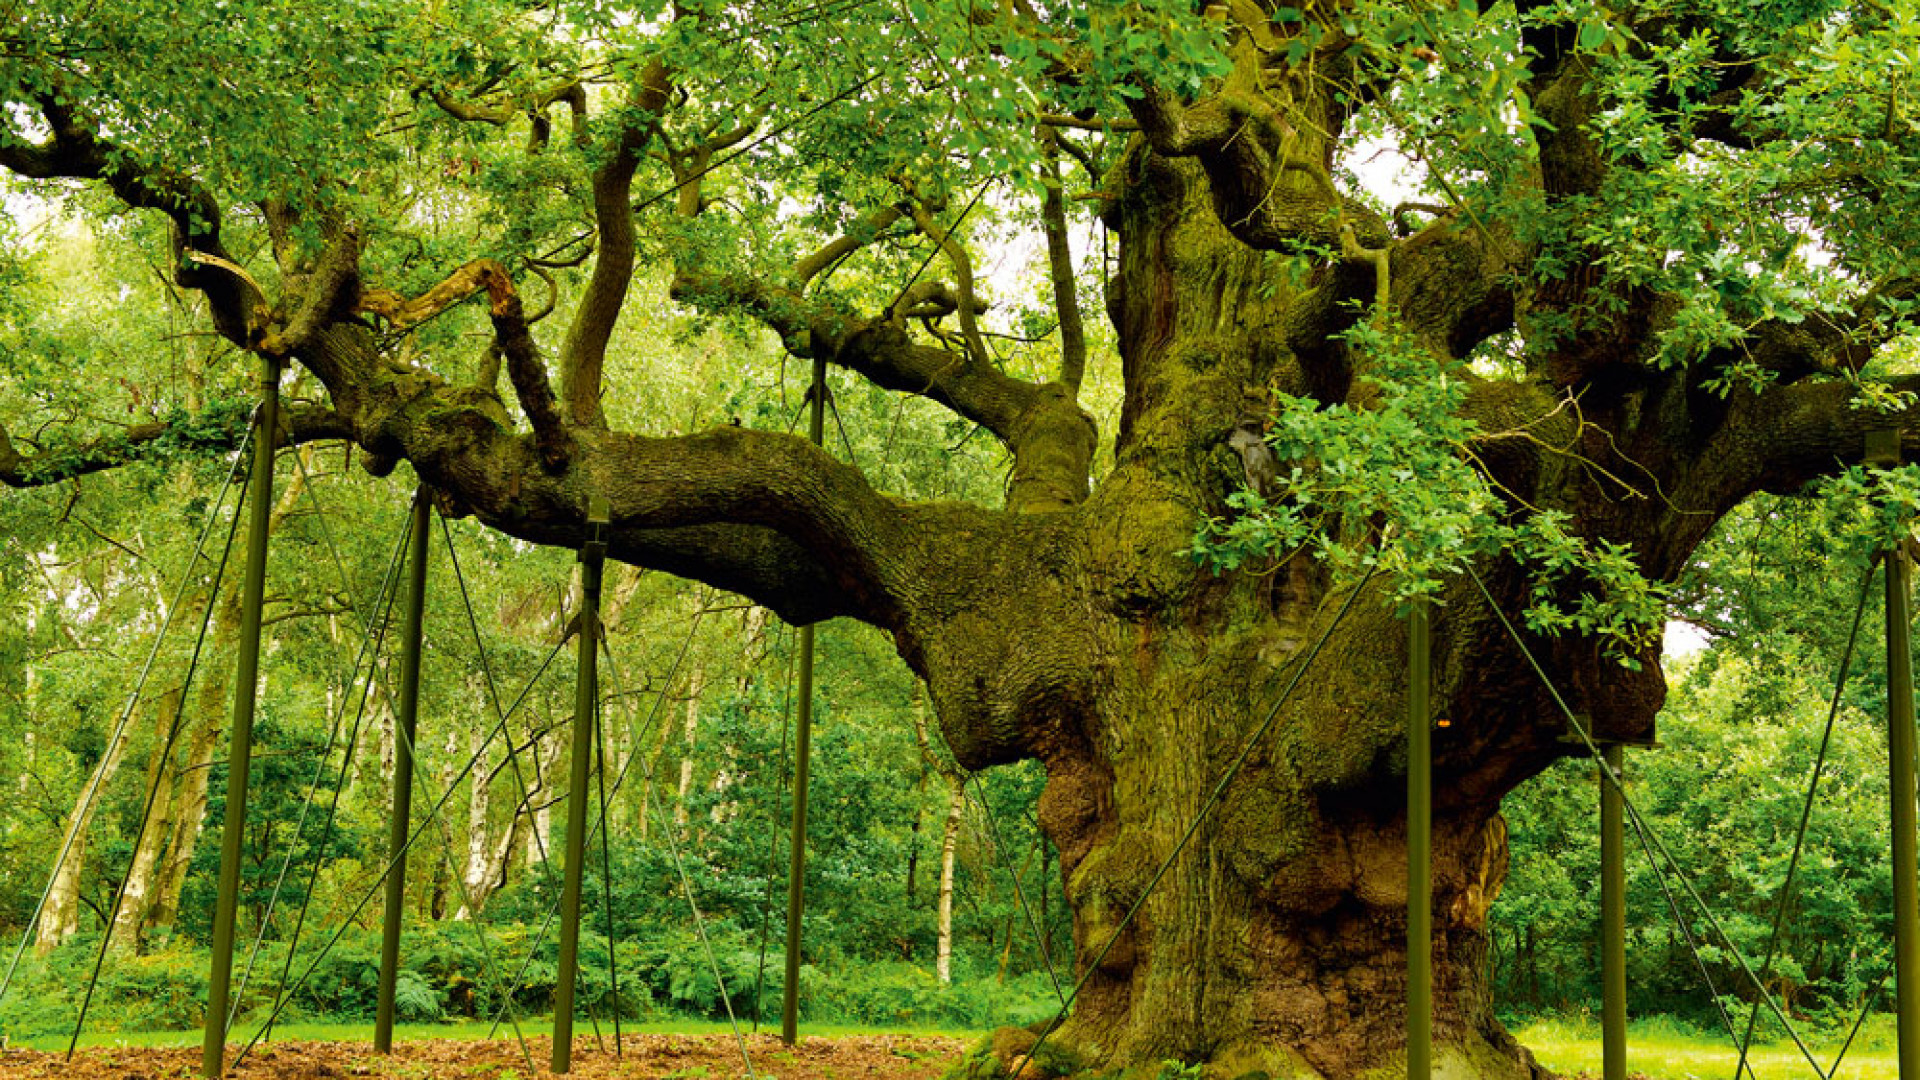 Major Oak, the oldest tree in Sherwood Forest